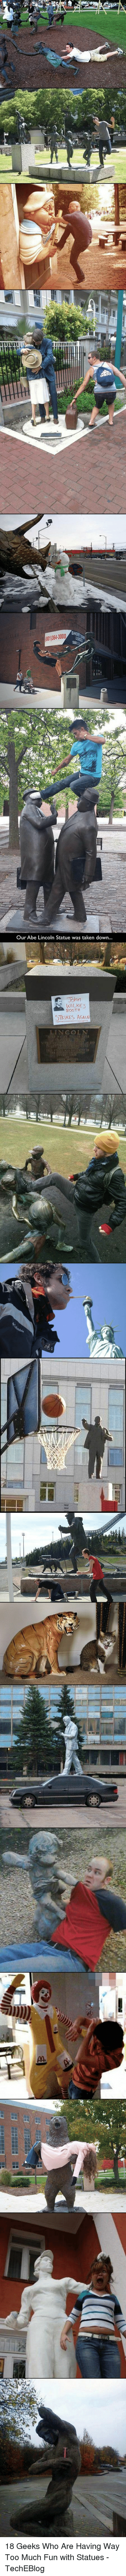 Too Much, Fun, and Who: 18 Geeks Who Are Having Way Too Much Fun with Statues - TechEBlog